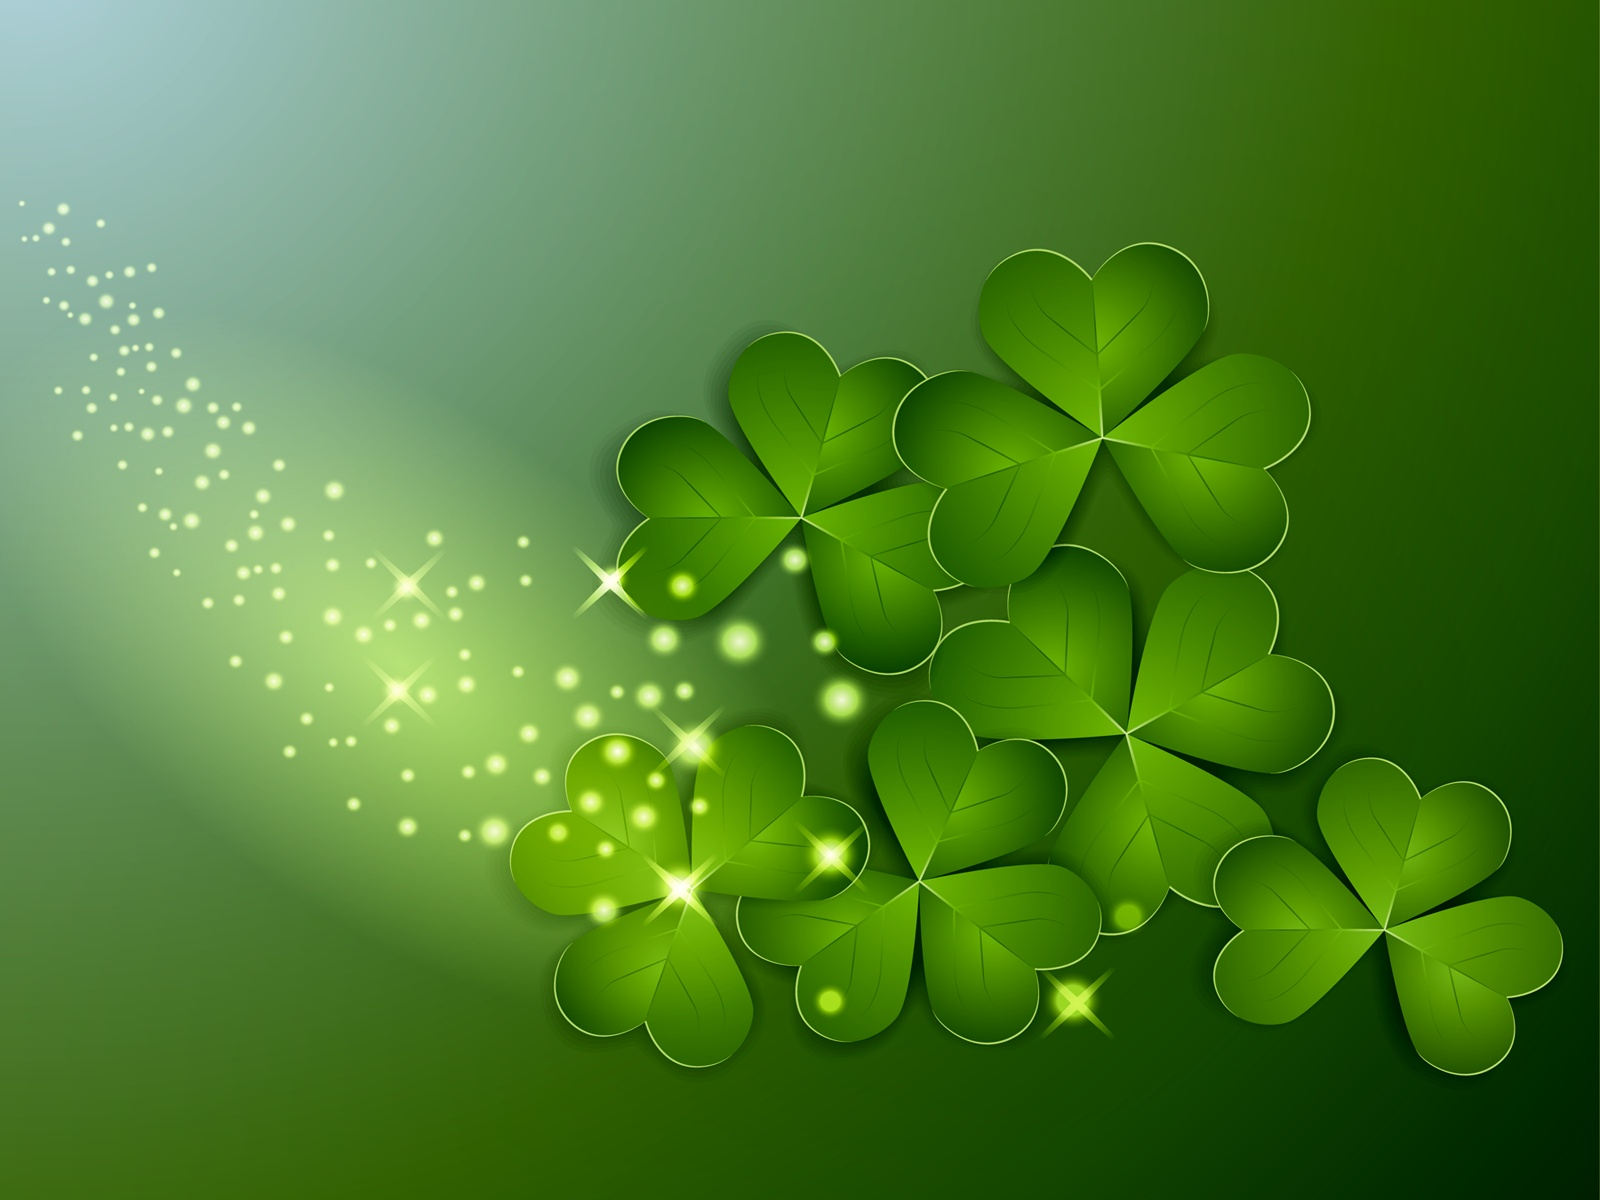 St Patricks Day Wallpaper   Miscellaneous Photos and Wallpapers 1600x1200